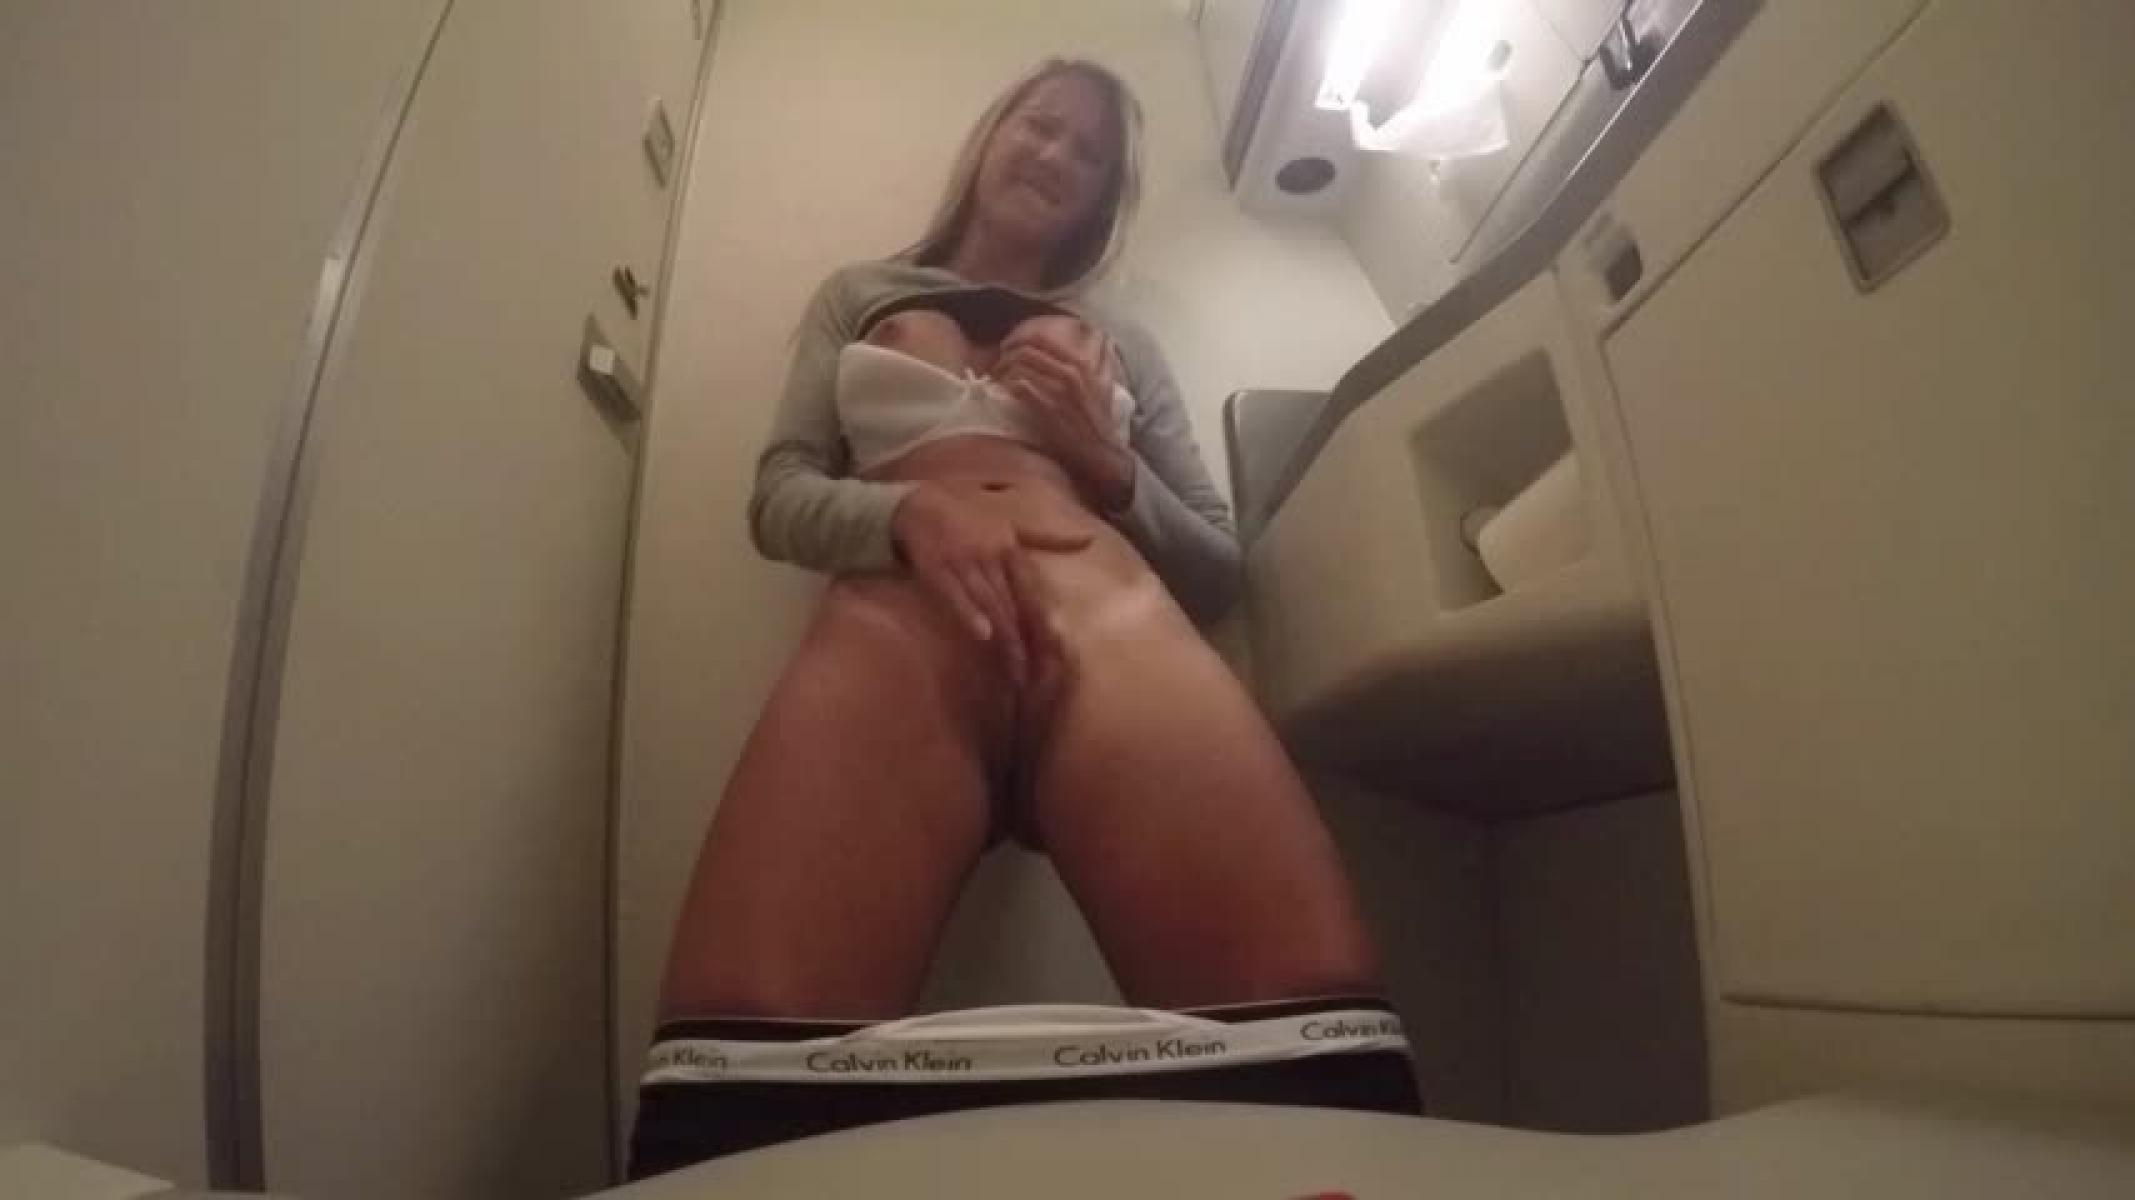 Shameless girl masturbates and have strong orgasm on a plane